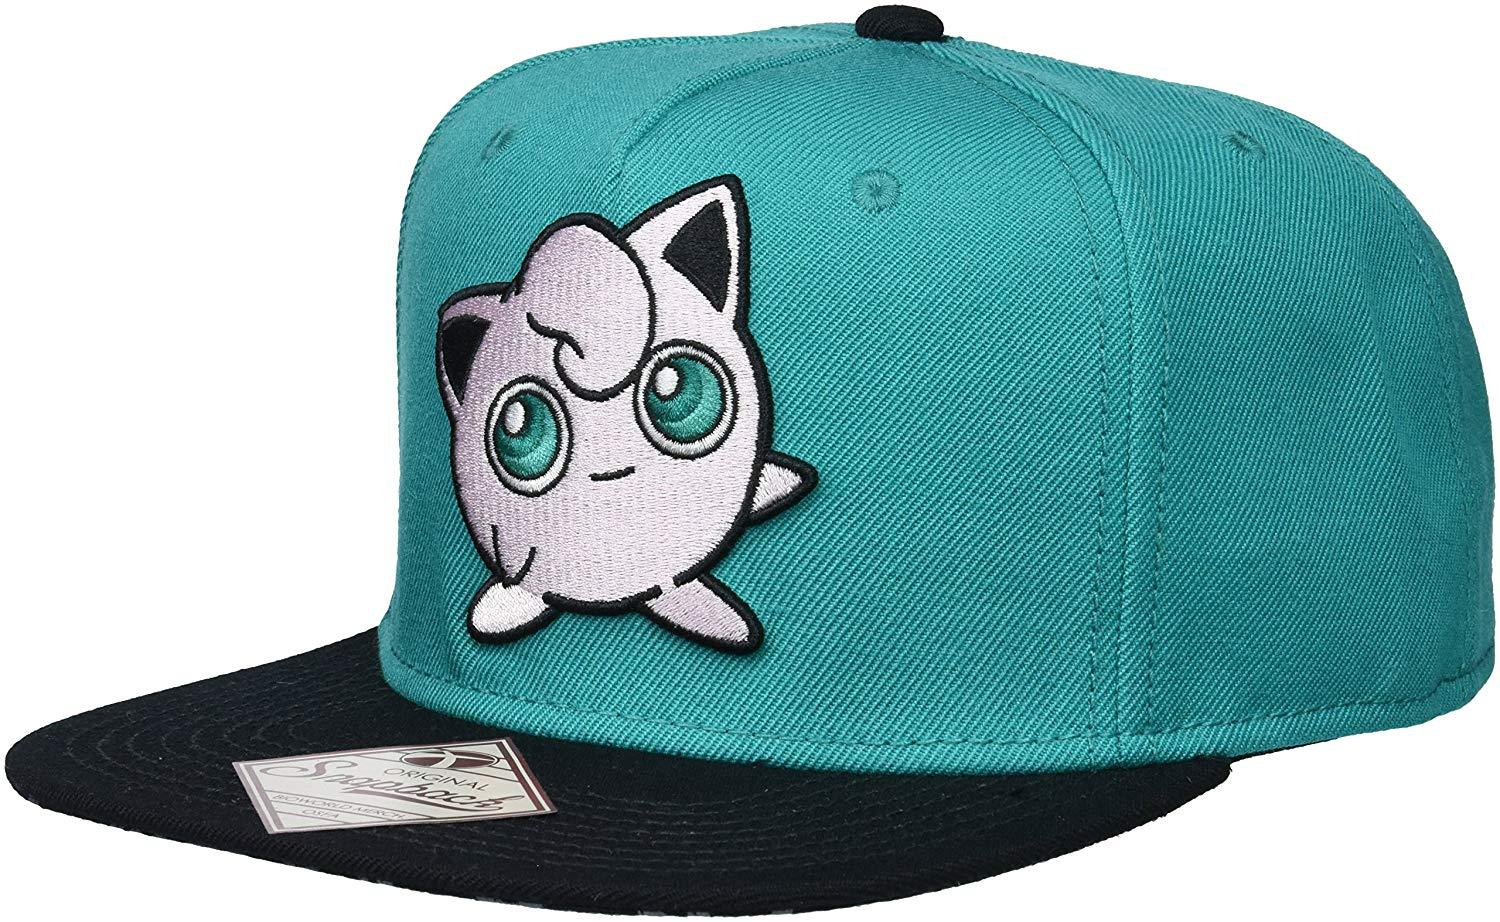 BIOWORLD Pokemon Jigglypuff Embroidered Turquoise Snapback Hat **NEW**